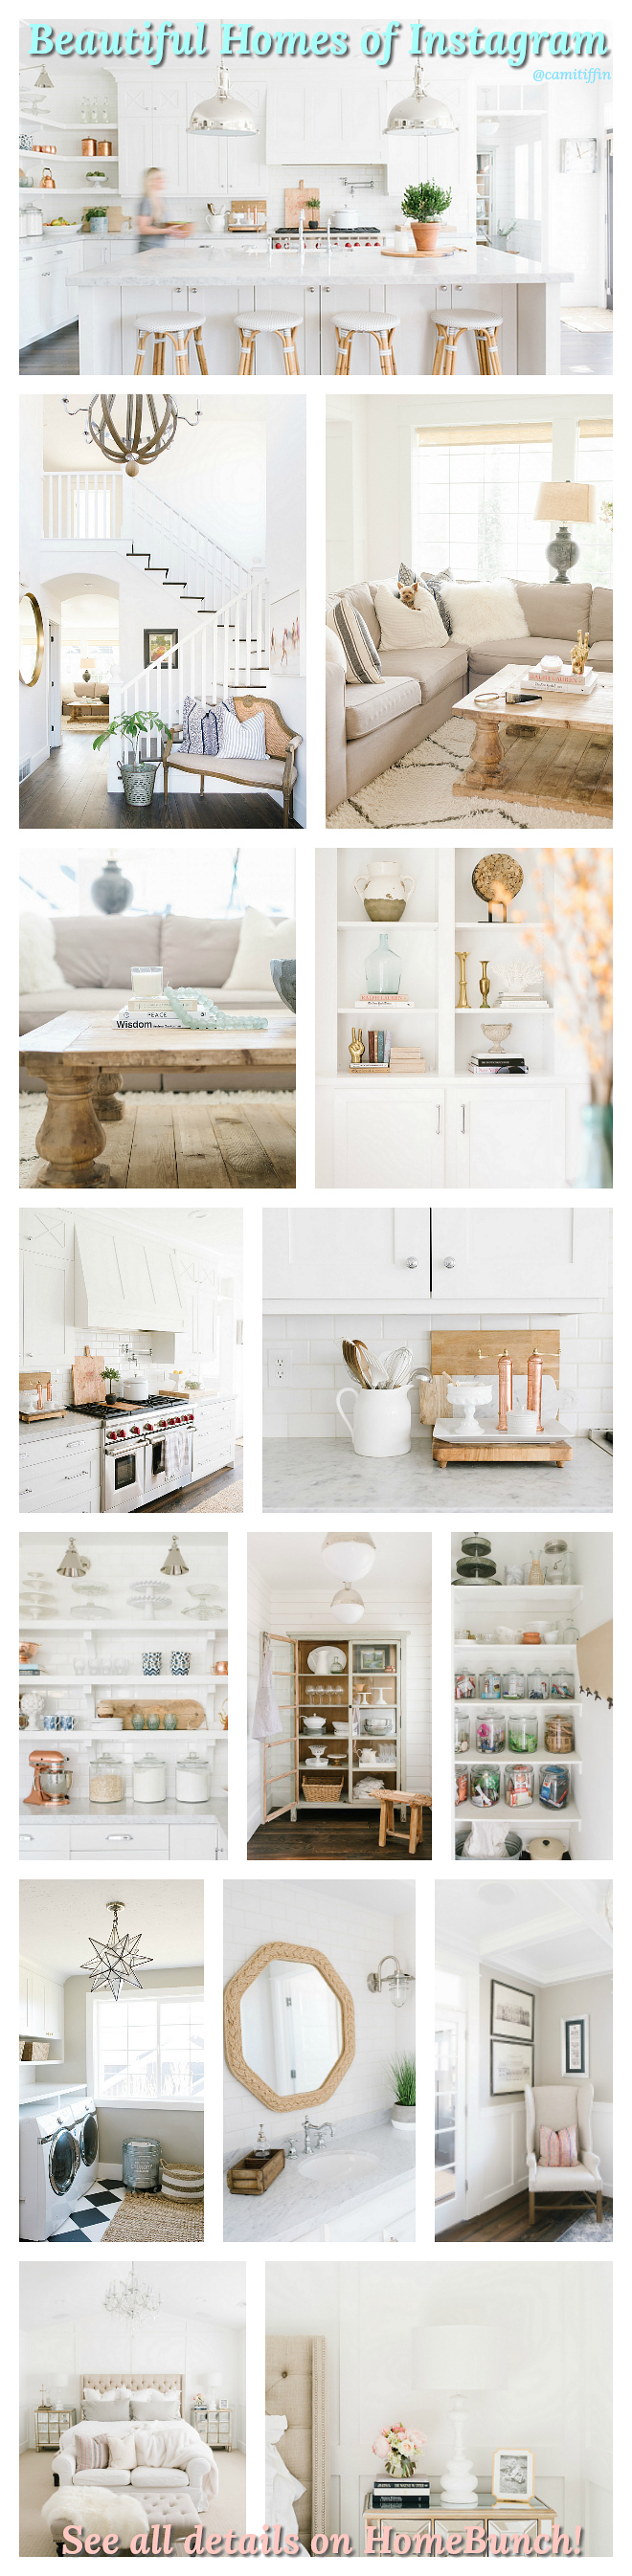 Beautiful Homes of Instagram Beautiful Homes of Instagram New Beautiful Homes of Instagram